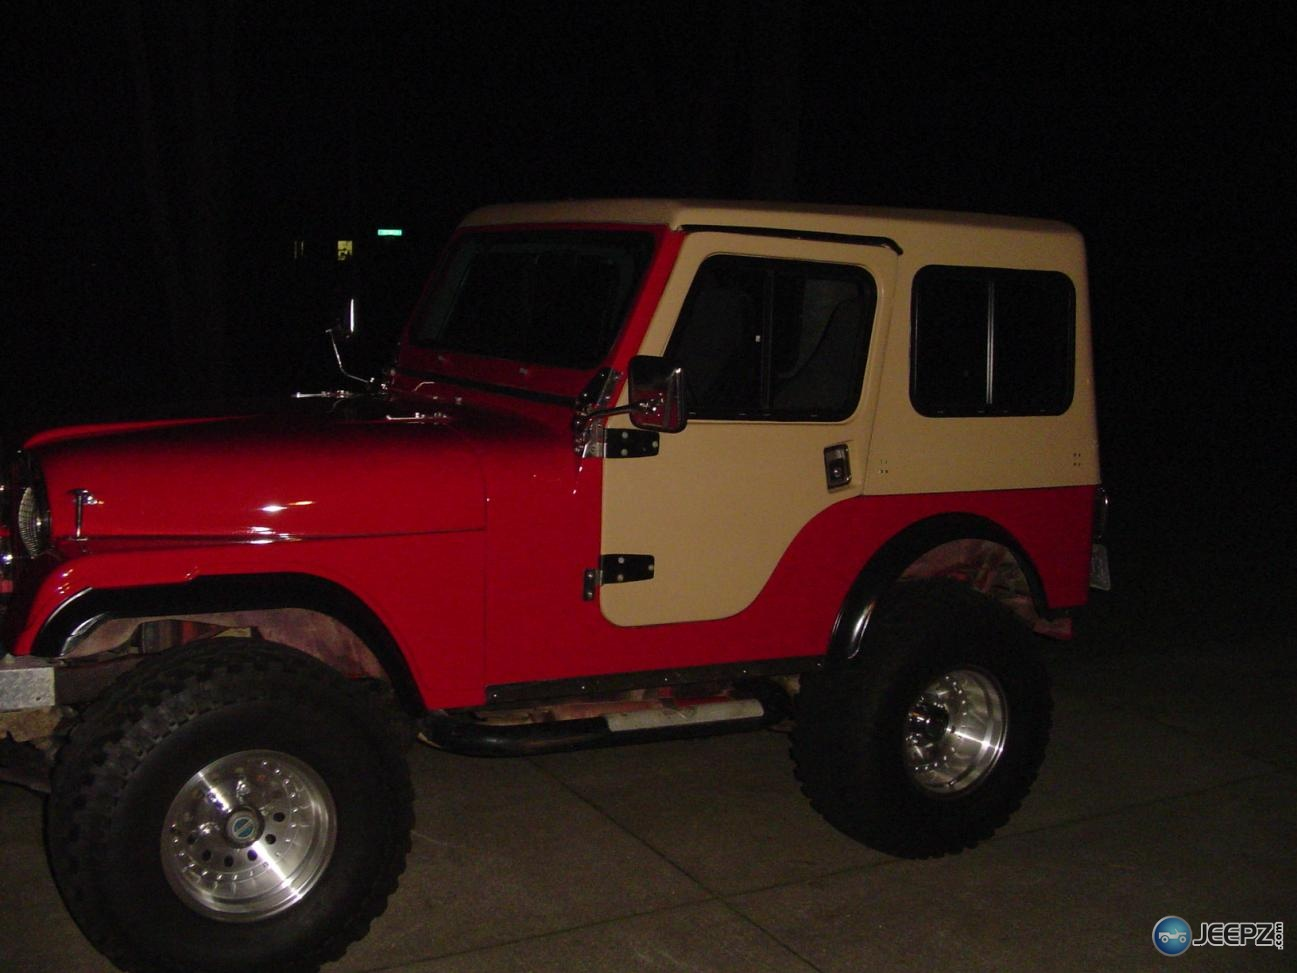 Cj5 Hardtop Ohio Brand New